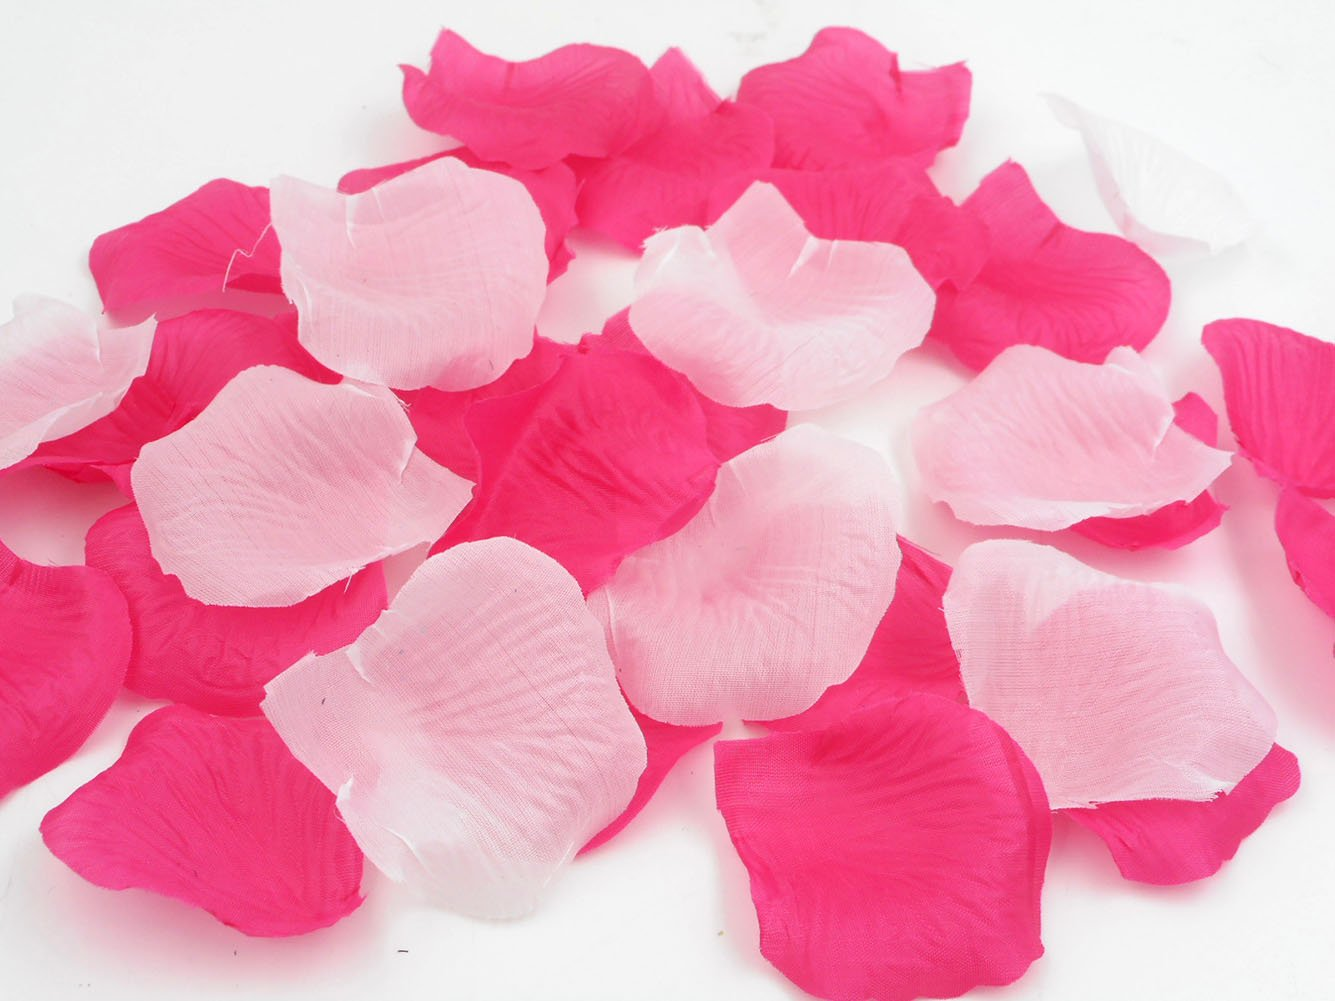 1000PCS-Decorative-Aisle-Runner-Flower-Girl-Basket-Petals-for-Wedding-Confetti-Cones-Engagement-Decorations-Reception-Table-Scatter-Hot-Pink-Mixed-White